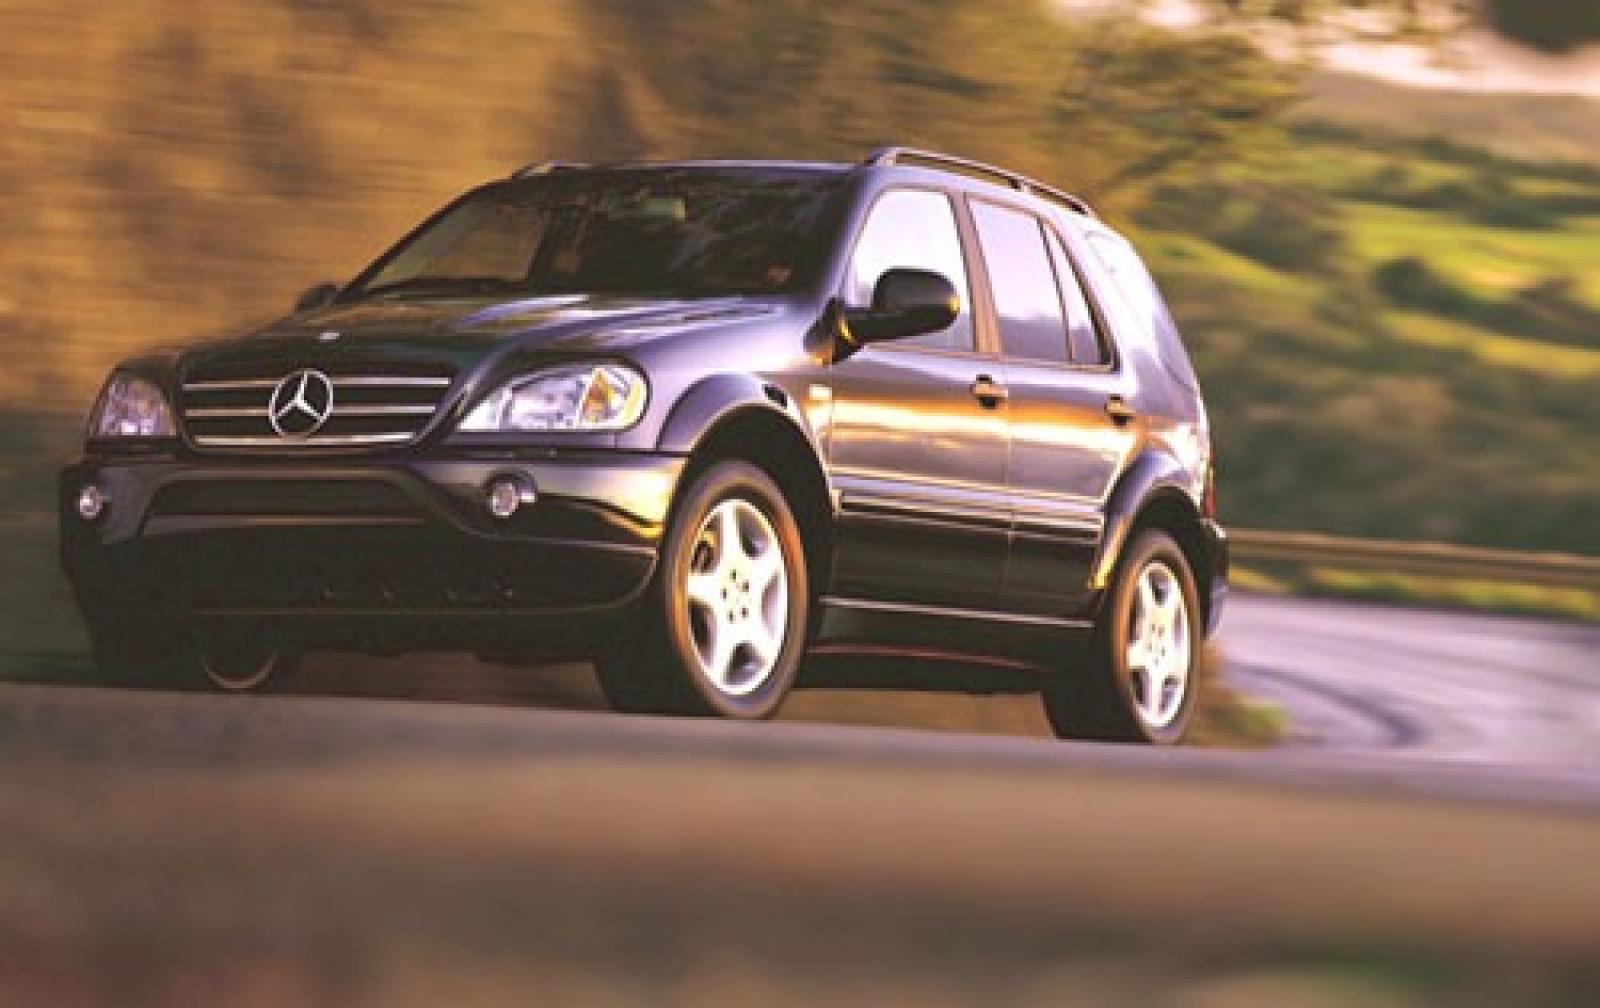 2003 mercedes benz m class information and photos for 2003 mercedes benz suv